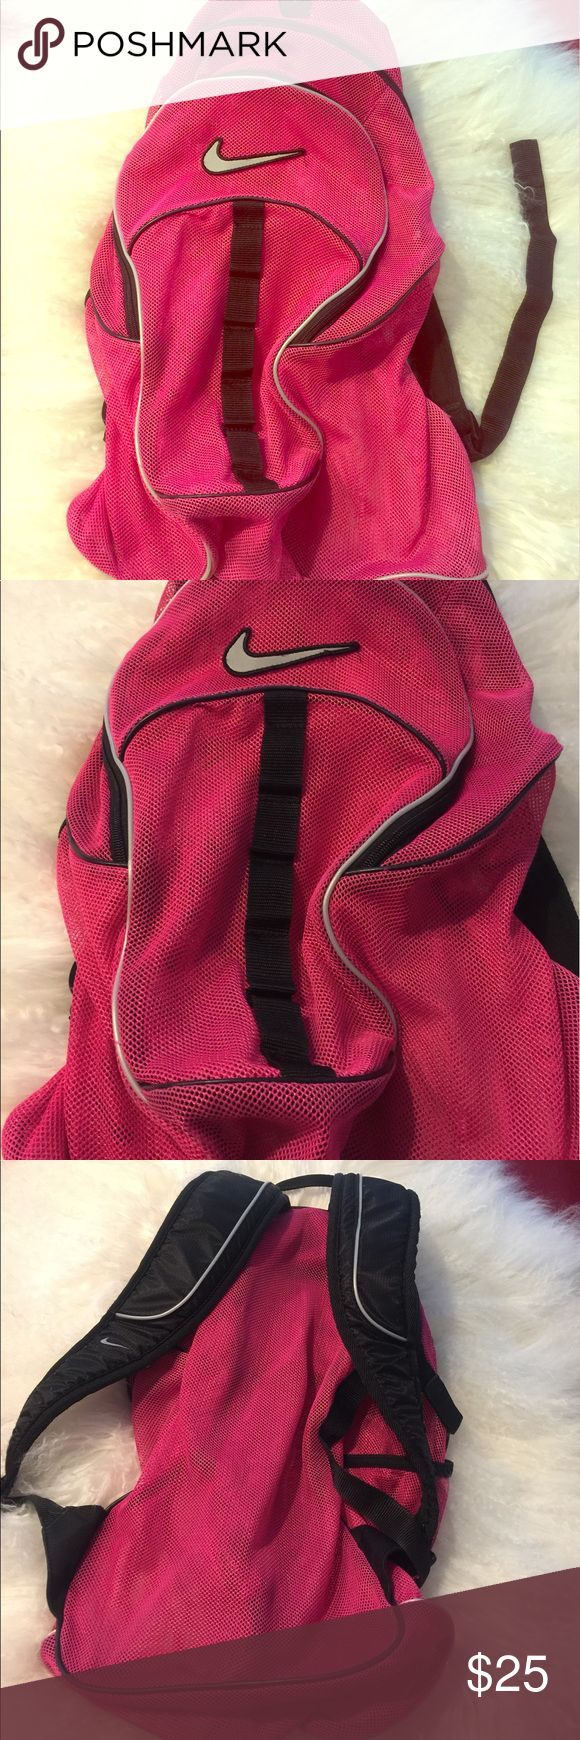 Nike mesh backpack pink and black large size Generously sized Nike backpack , great mesh design. Pink and black color. Shows some wear Nike Bags Backpacks